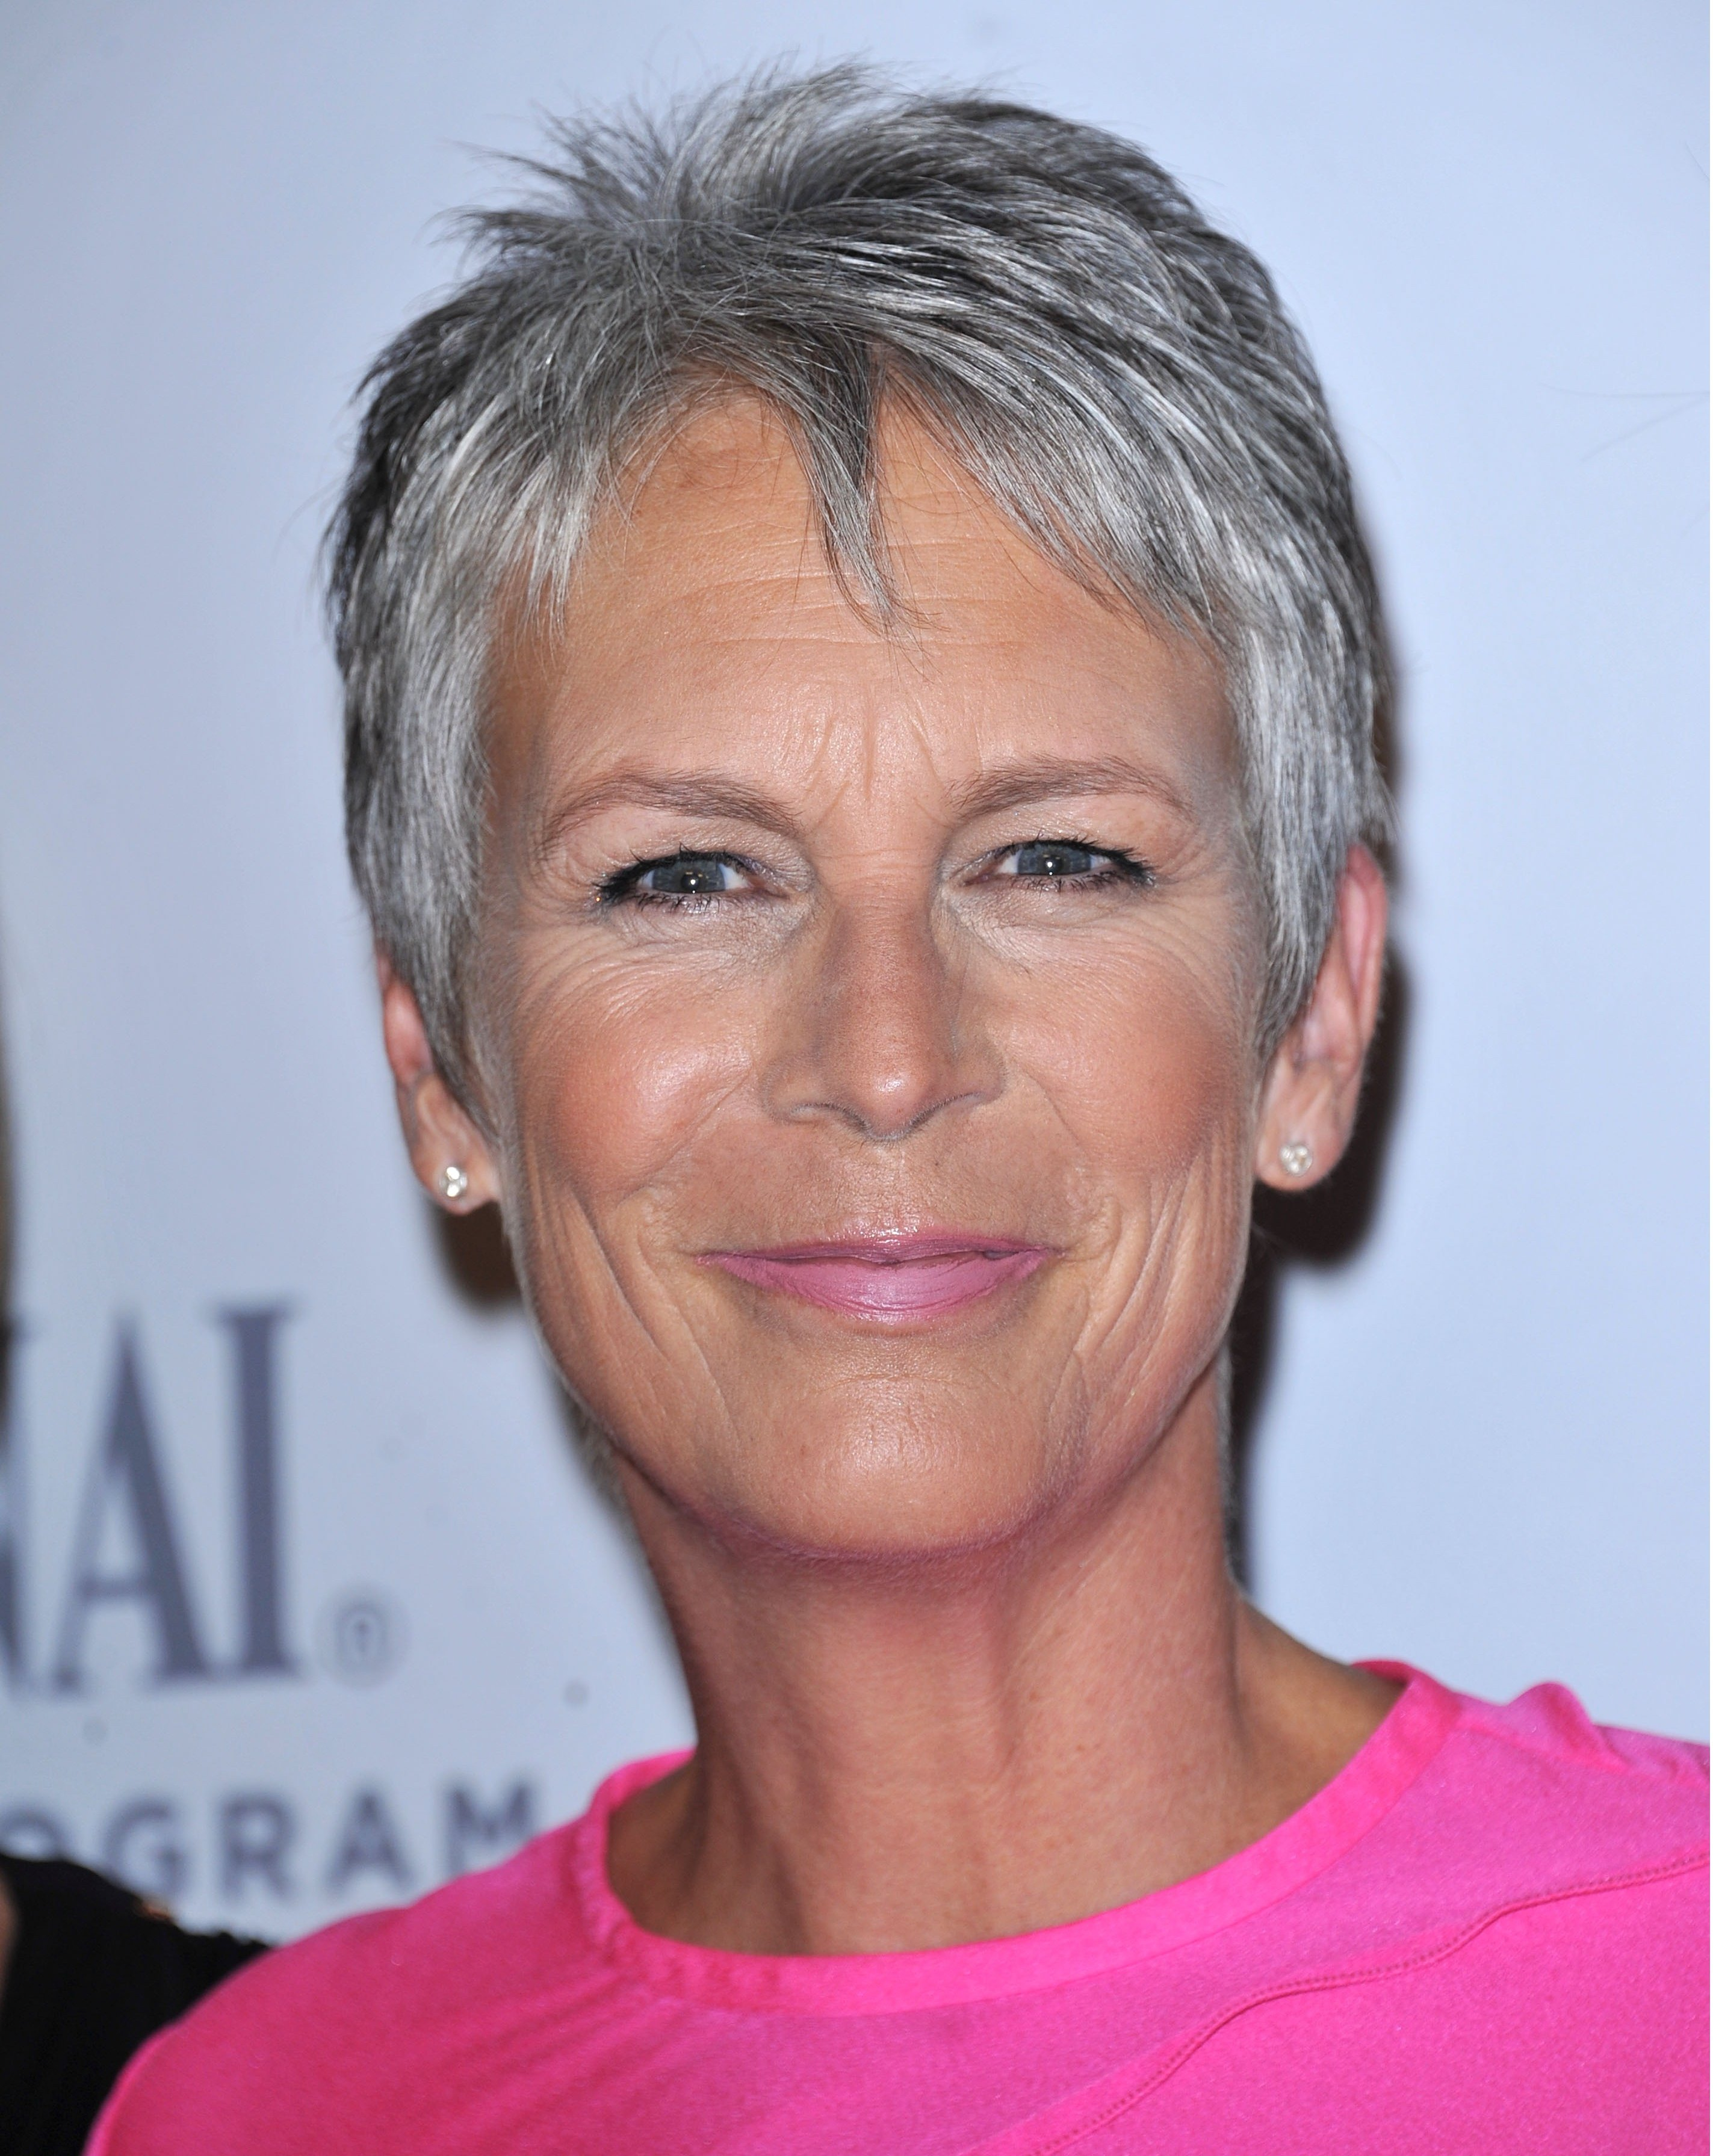 Pictures Of Jamie Lee Curtis Haircut Back View | HAIRSTYLE GALLERY